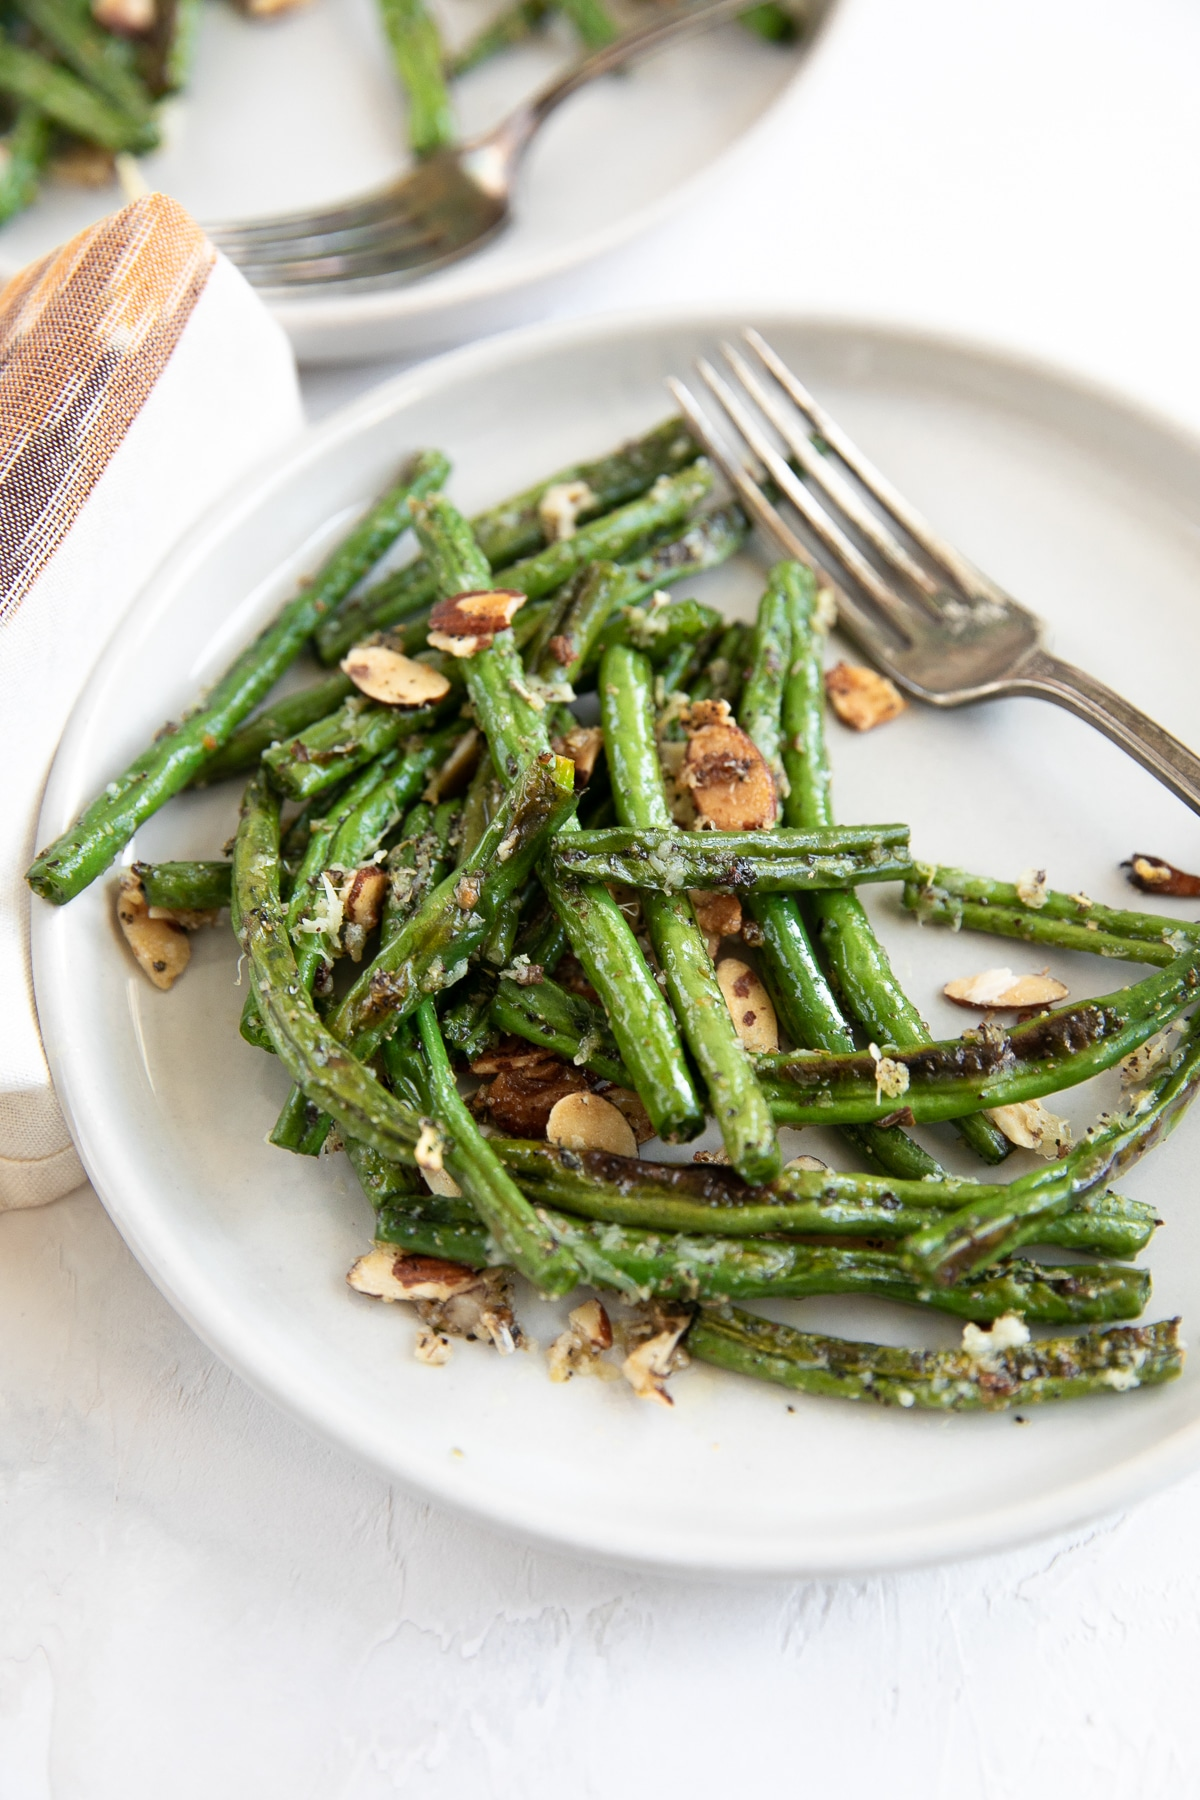 Small serving plate with oven roasted green beans tossed in shredded parmesan cheese and candied slivered almonds.